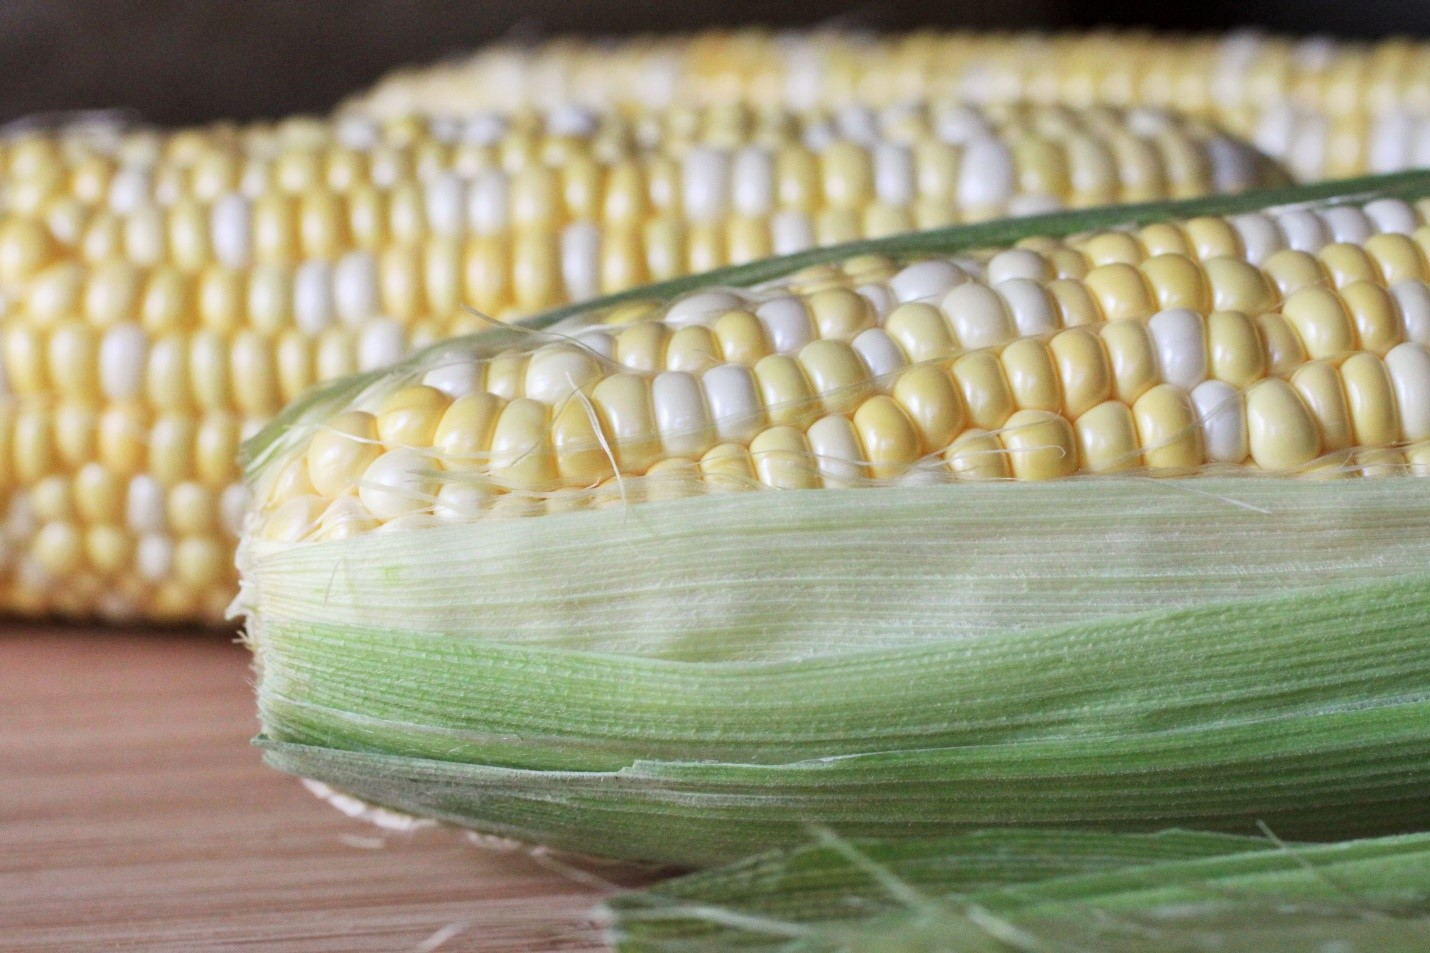 When buying Go for cobs with fresh looking green husks and moist stems. Kernels should be juicy when pierced. How to store Wrap unhusked ears with damp paper towel. Place in a plastic bag and refrigerate for two to three days. How to prepare Remove husks and silk. Rinse under water. To remove kernels, slice lengthwise along the cob. Nutrition Corn is a good source of folate. It also contains fibre, vitamin C and B vitamins (niacin and thiamine).